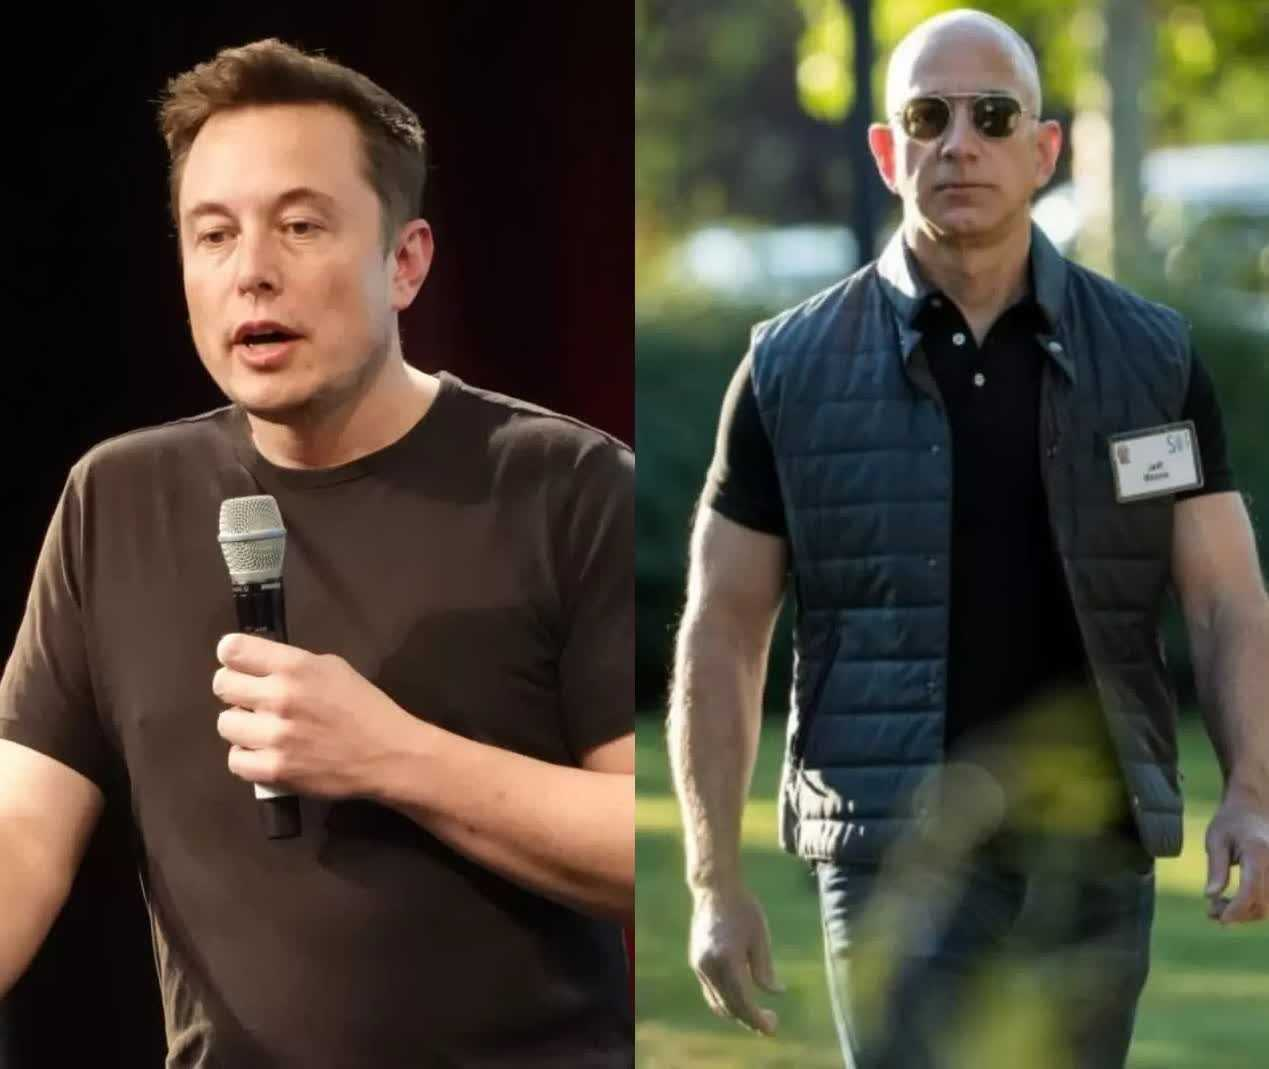 Report shows how billionaires including Jeff Bezos and Elon Musk pay little to no taxes